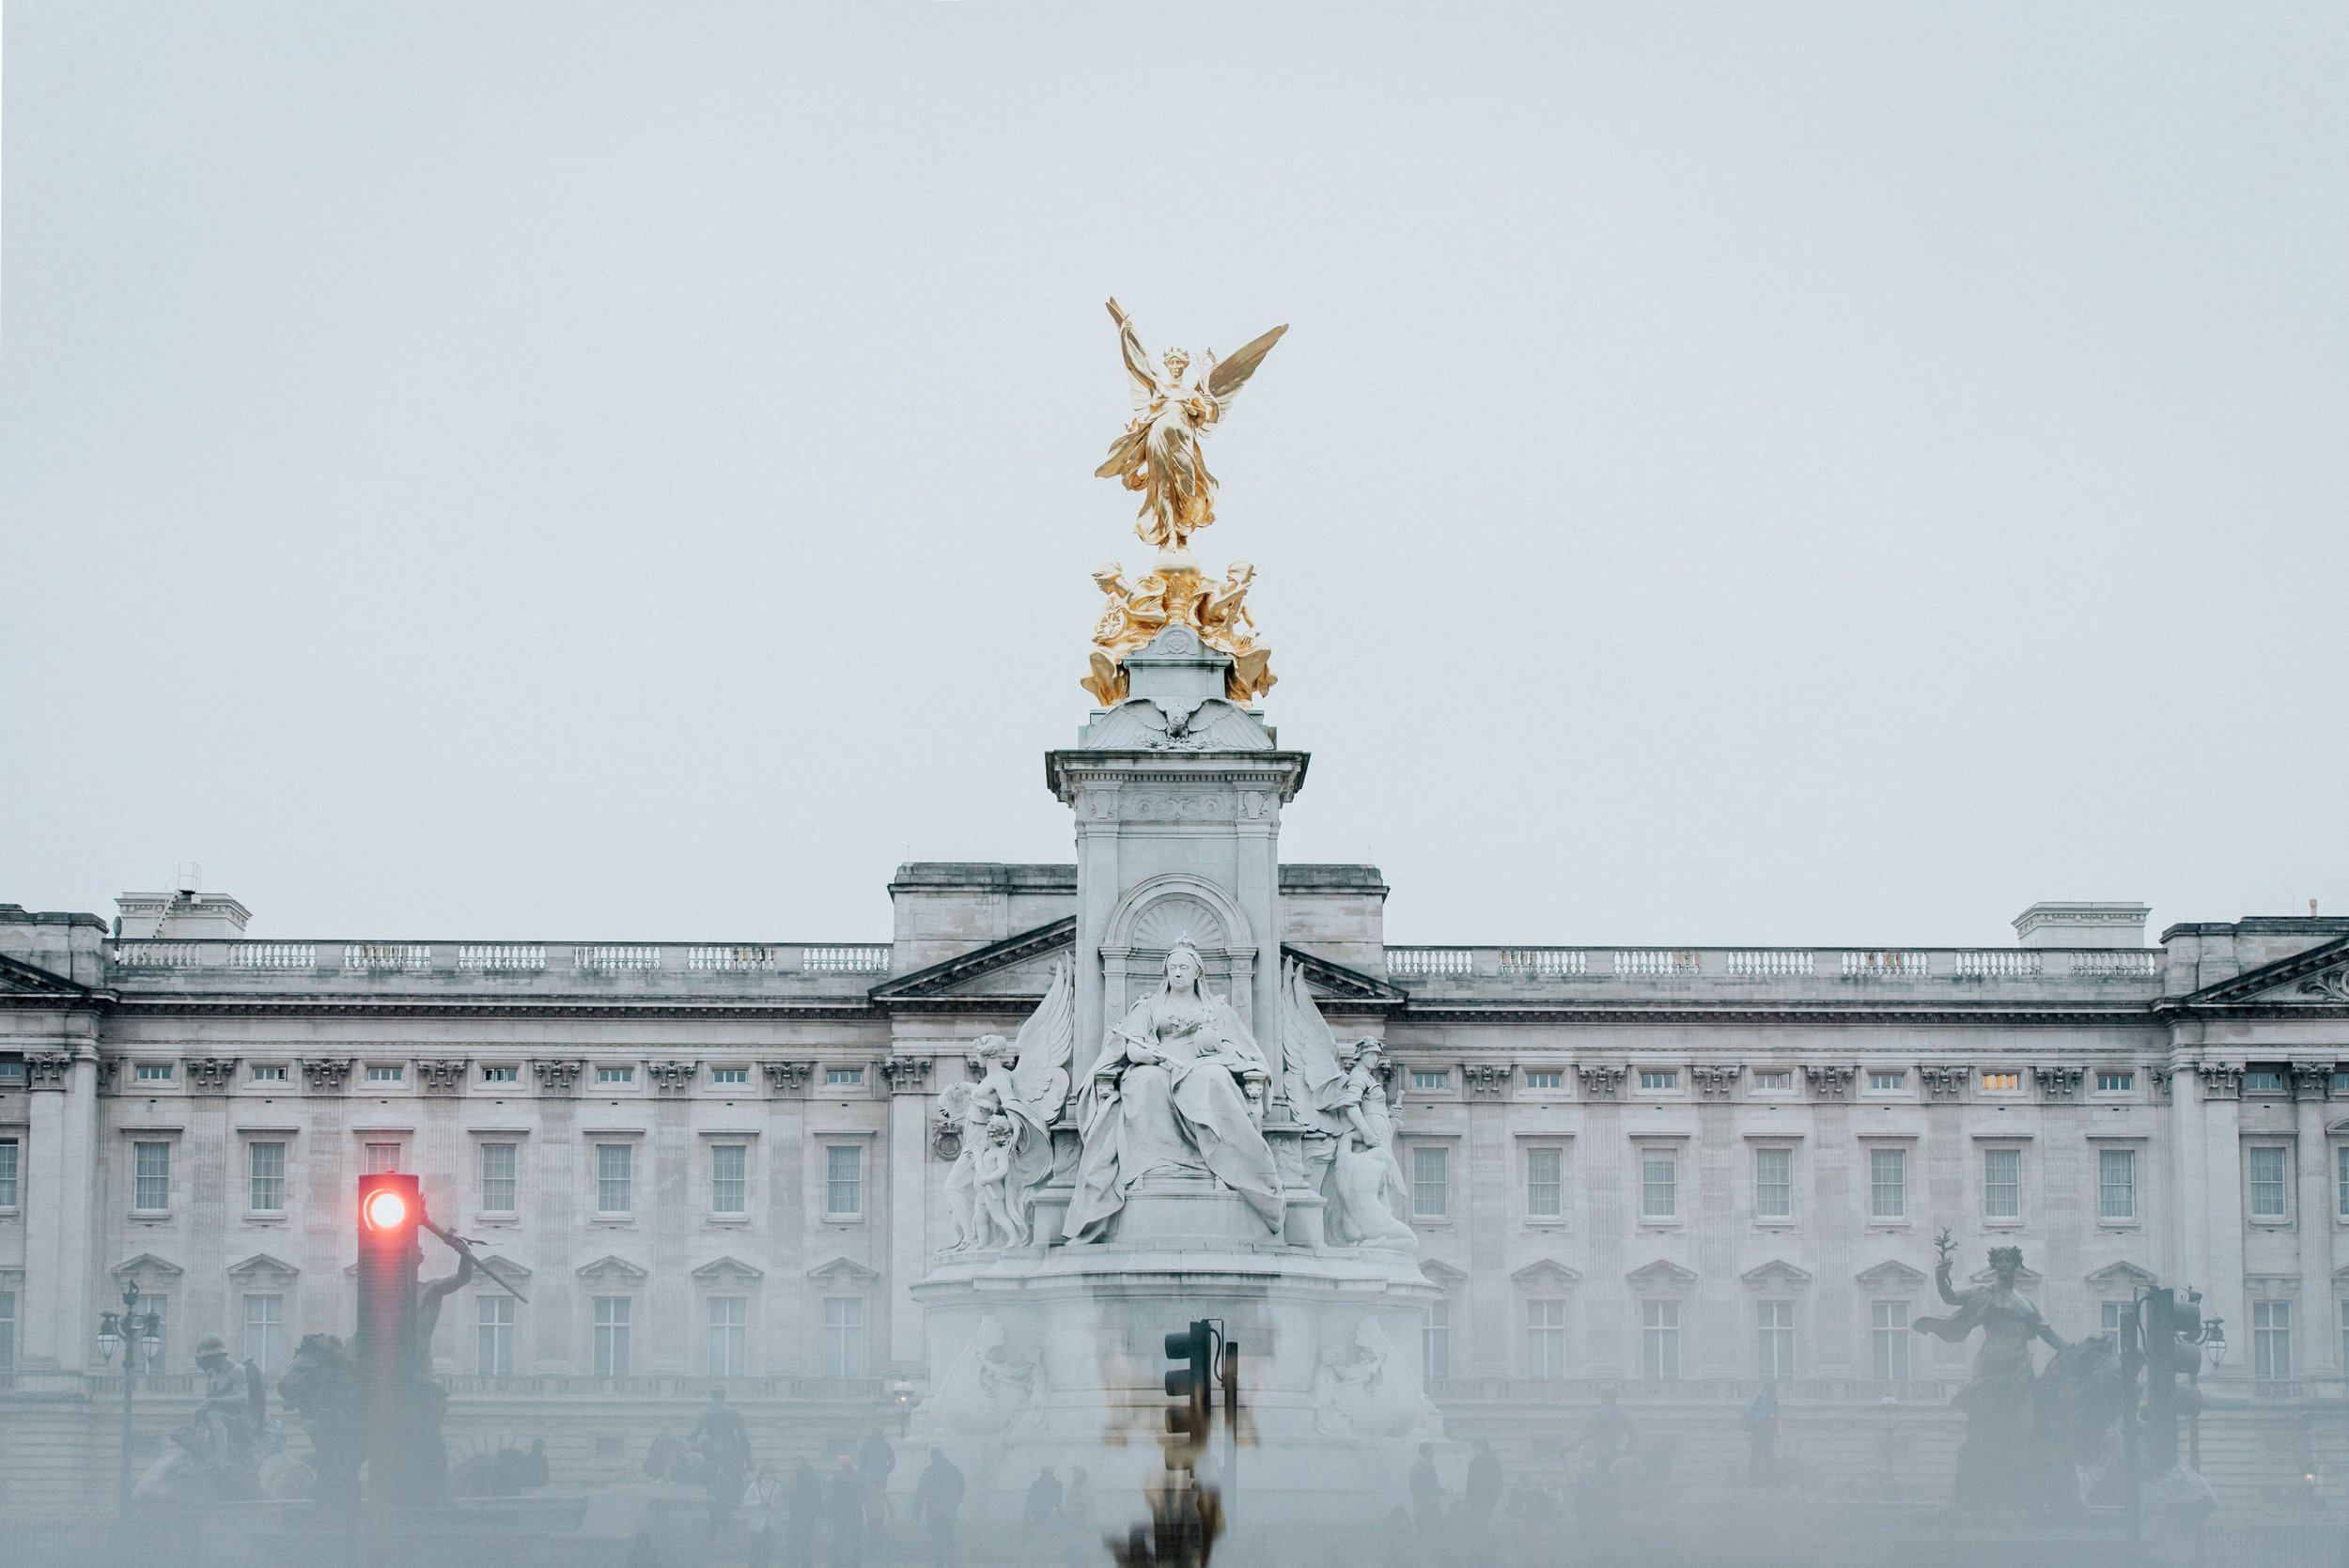 Buckingham Palace is one of the best places to visit in London